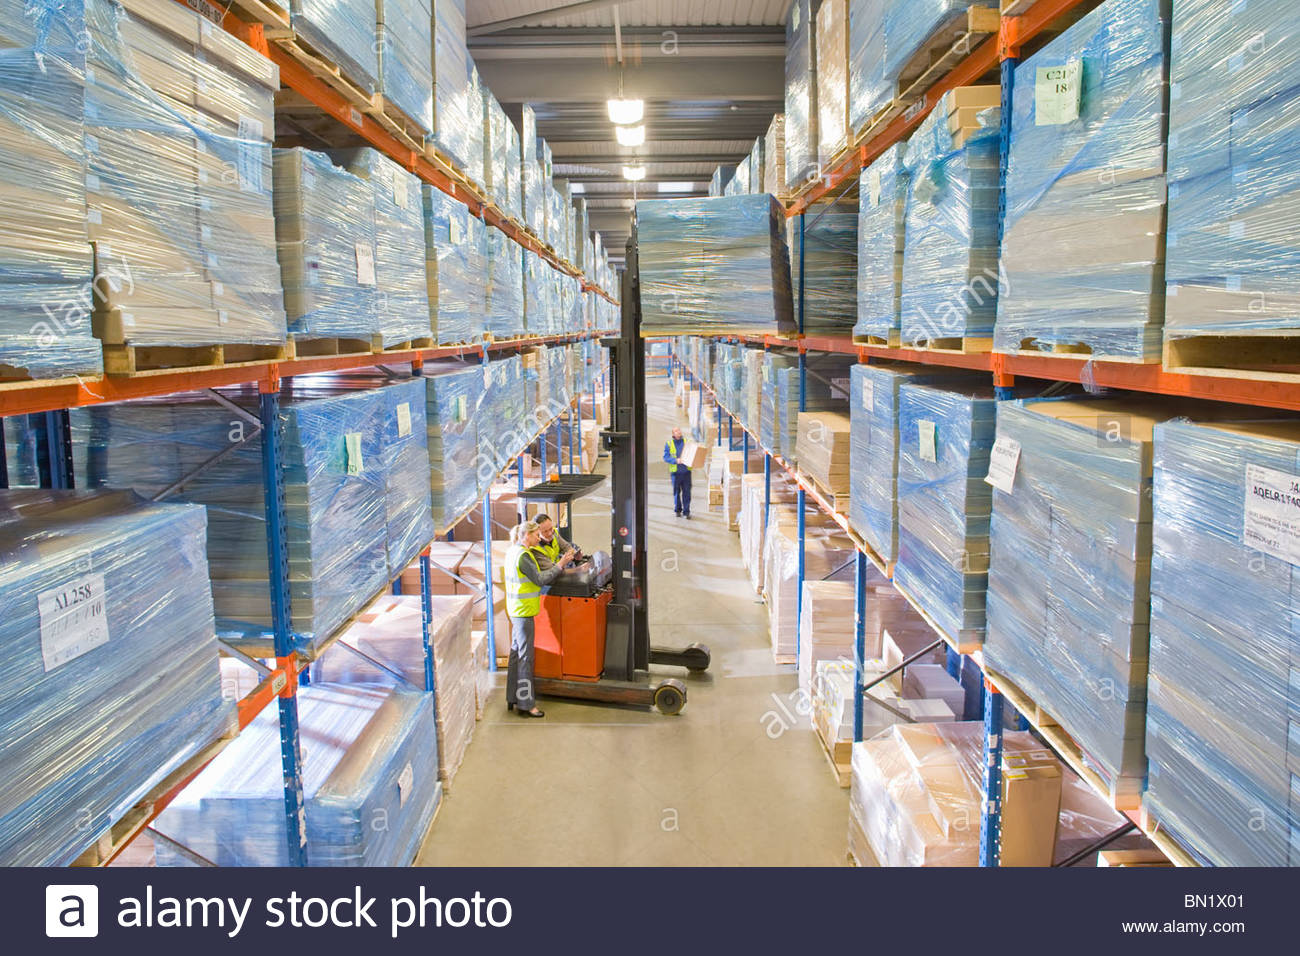 Warehouse workers moving boxes from shelf with forklift - Stock Image